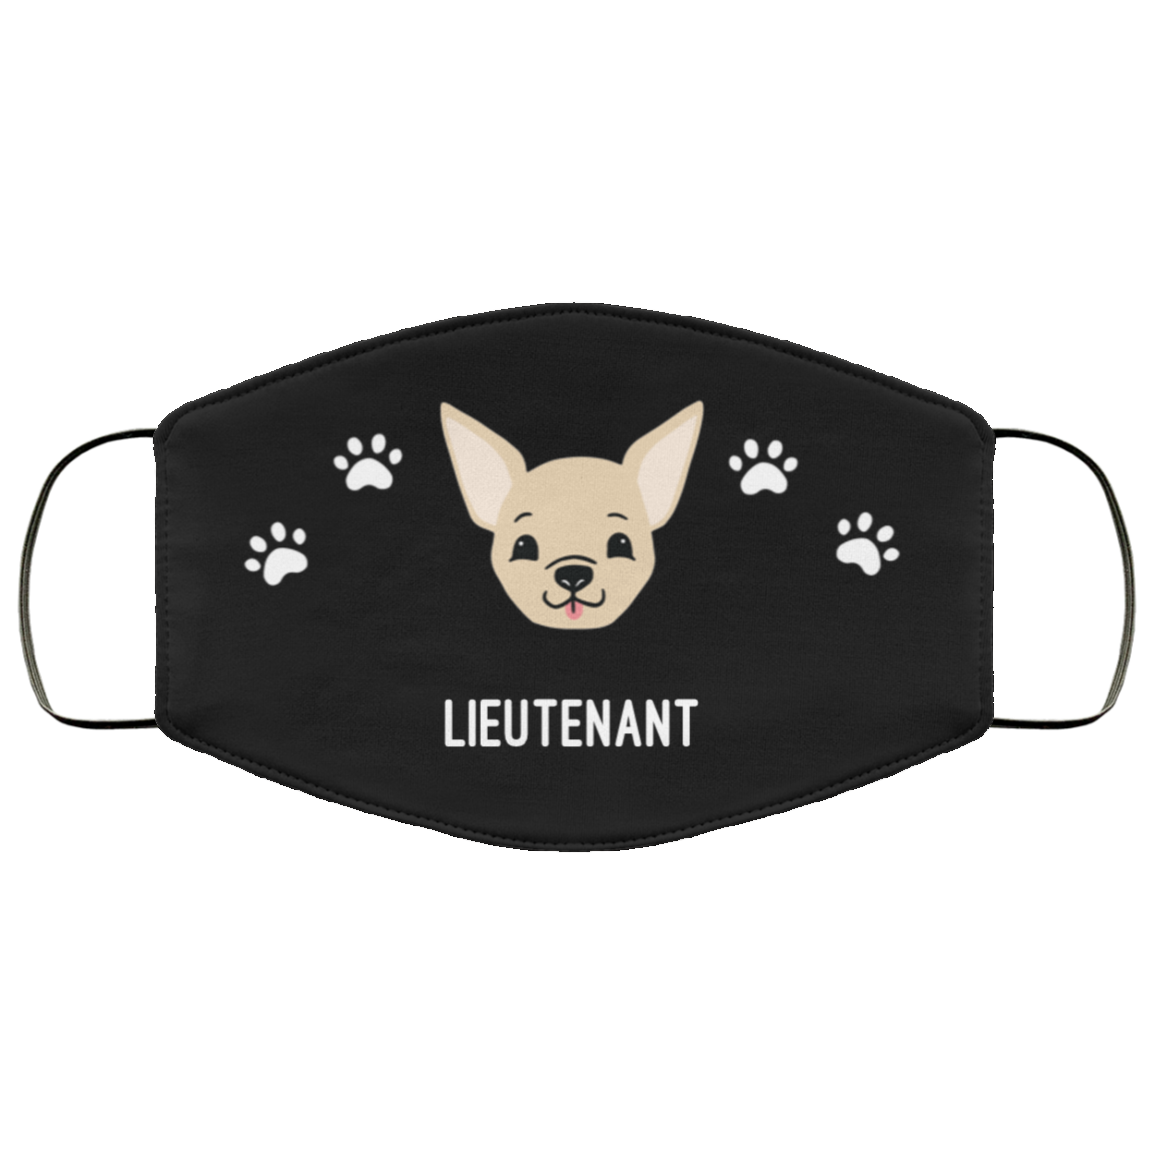 Tan Chihuahua Personalized Protective Face Covering – Black